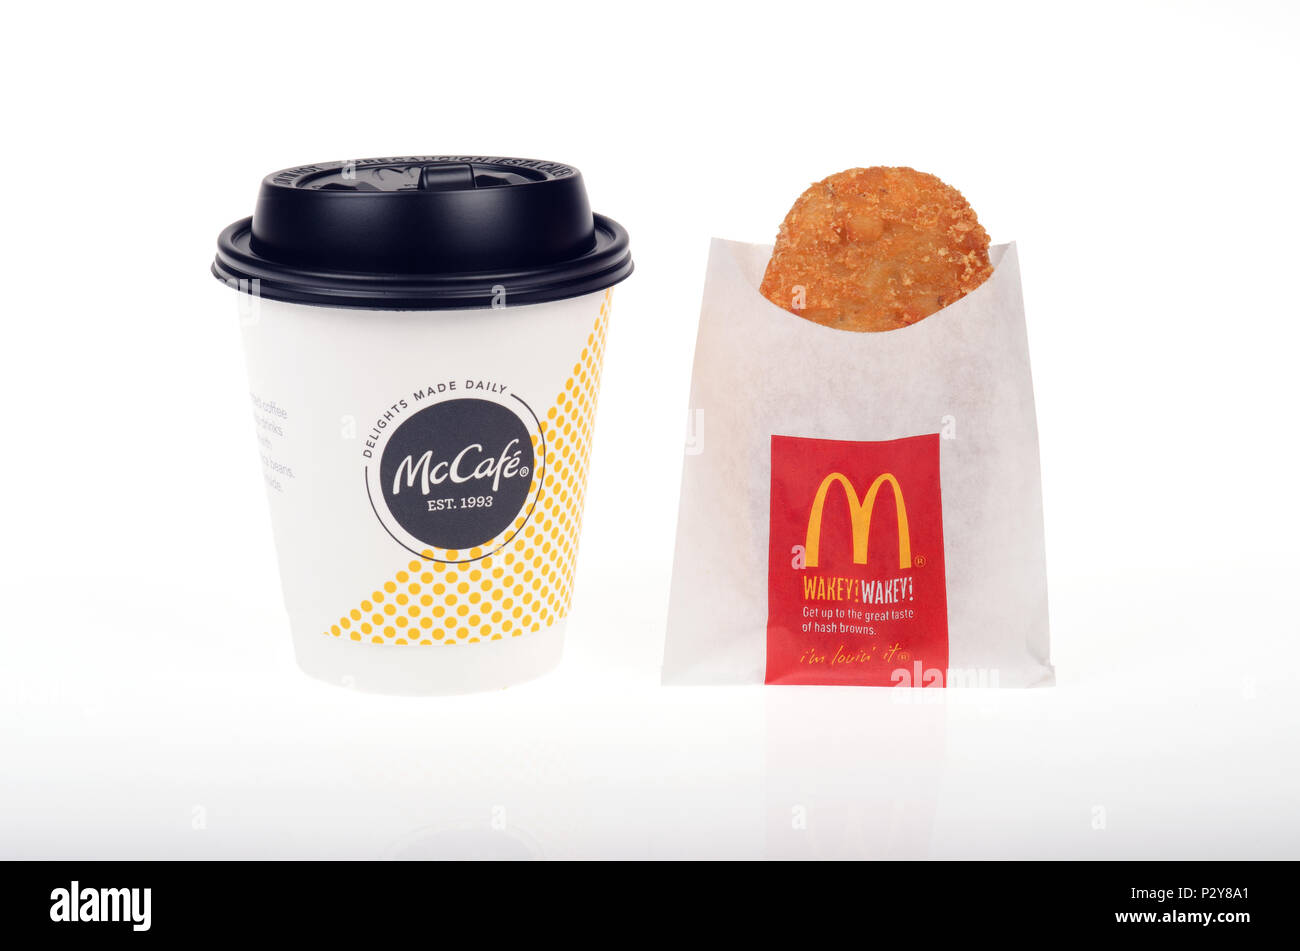 Mcdonalds Fast Food In Stock Photos & Mcdonalds Fast Food In Stock ...